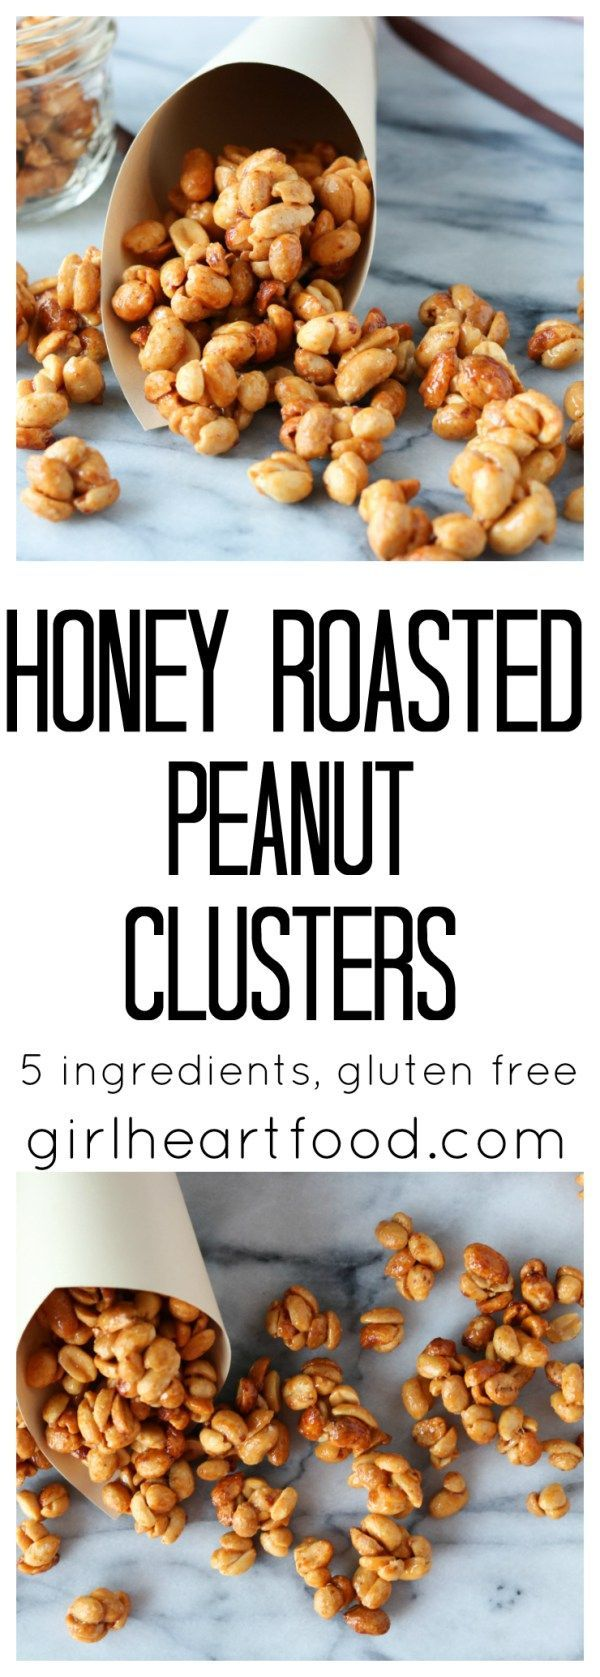 Five ingredients and only 15 minutes and you're on your way to one delicious snack with these honey roasted peanut clusters {gluten free} - girlheartfood.com